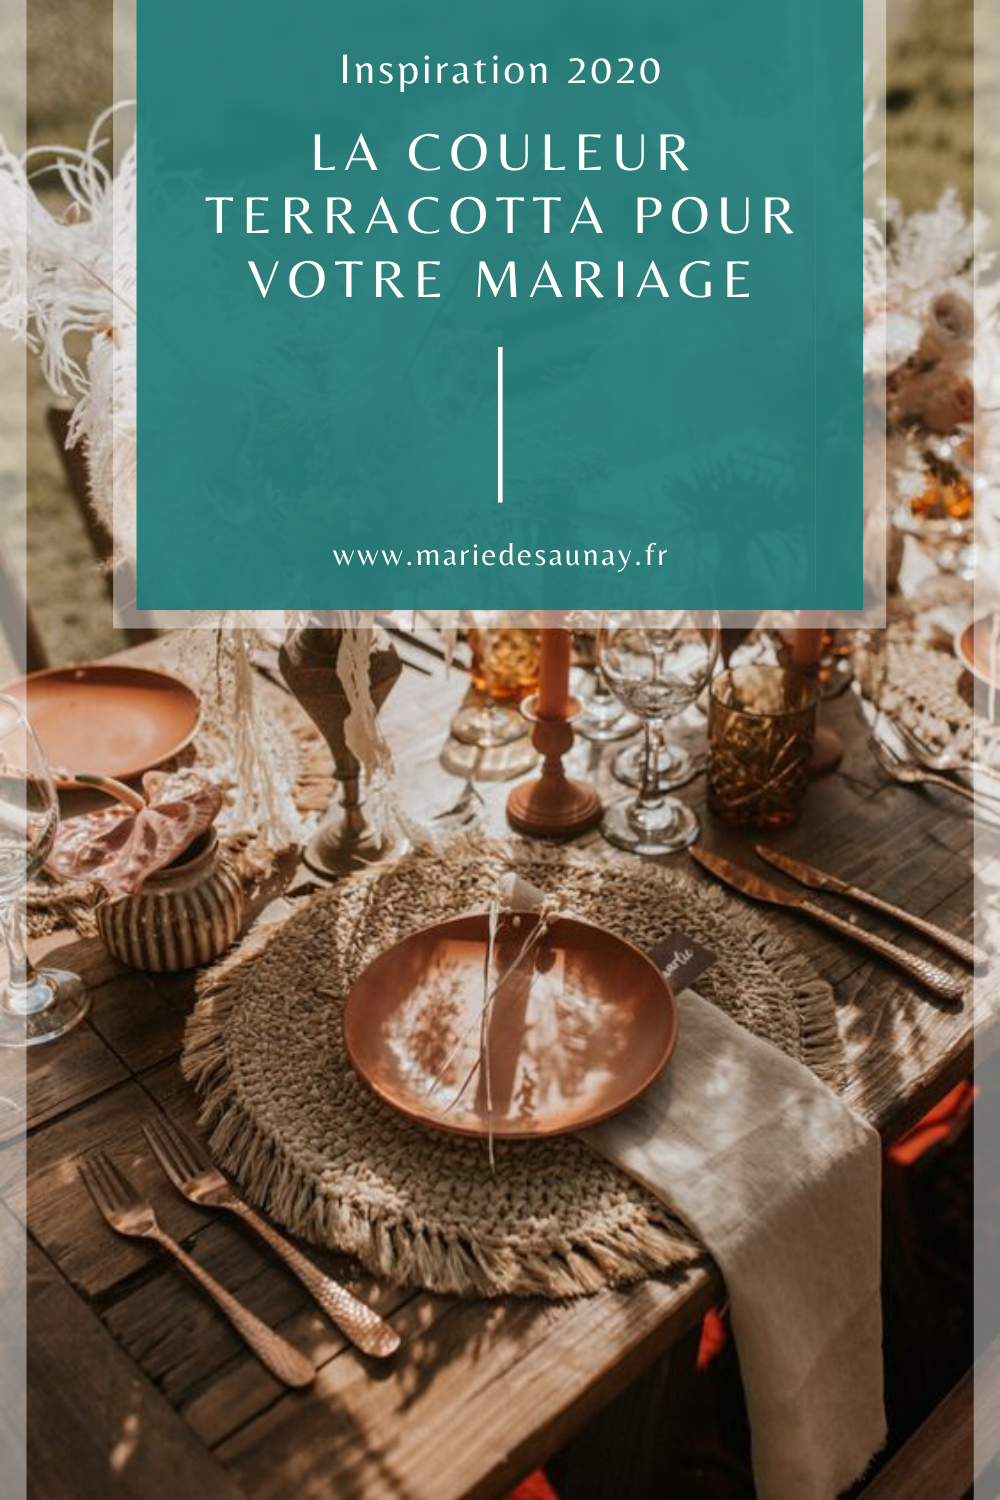 terracotta-blog-inspiration-decoration-mariage-2020